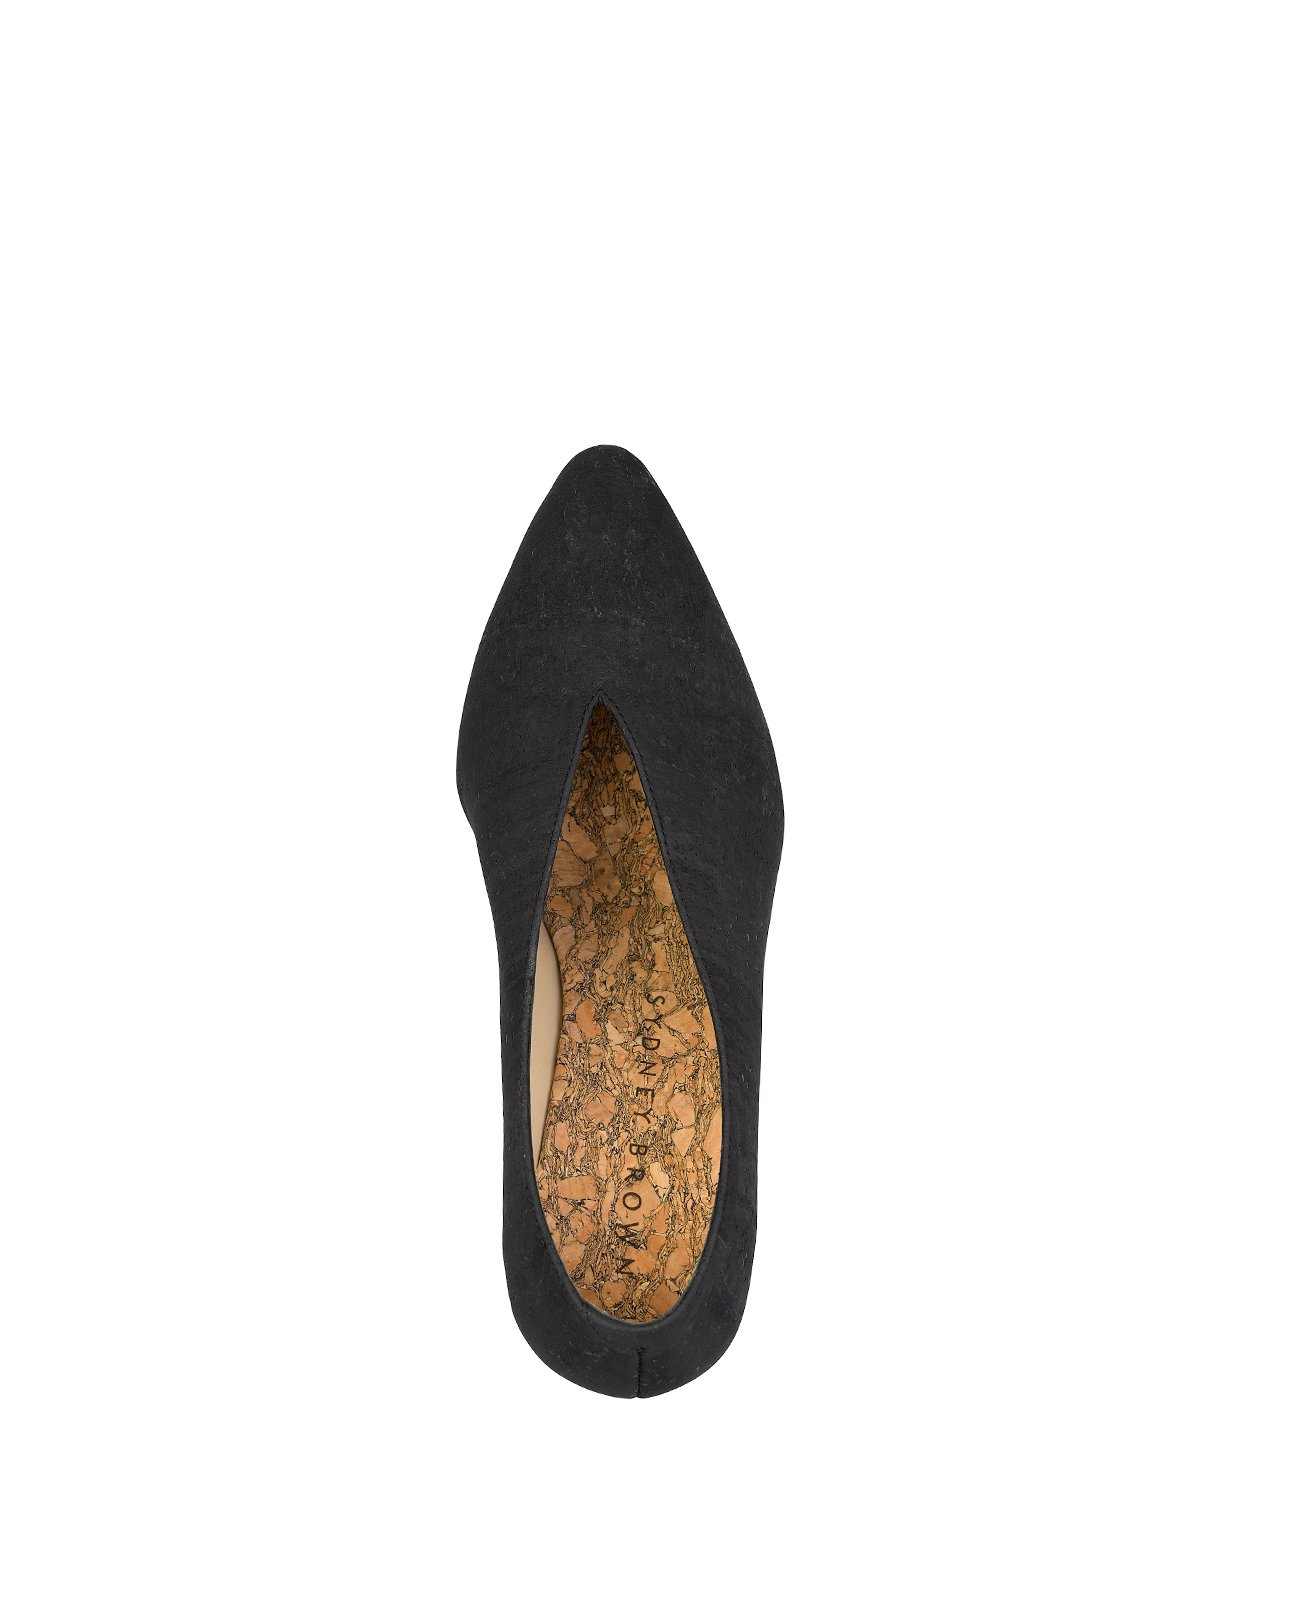 Sydney Brown Vegan, Animal-Free, Non-Leather, Ethical Classic V-Wedges in Charcoal Black Cork, Pointy V-Shape Wedges, Low Heel.